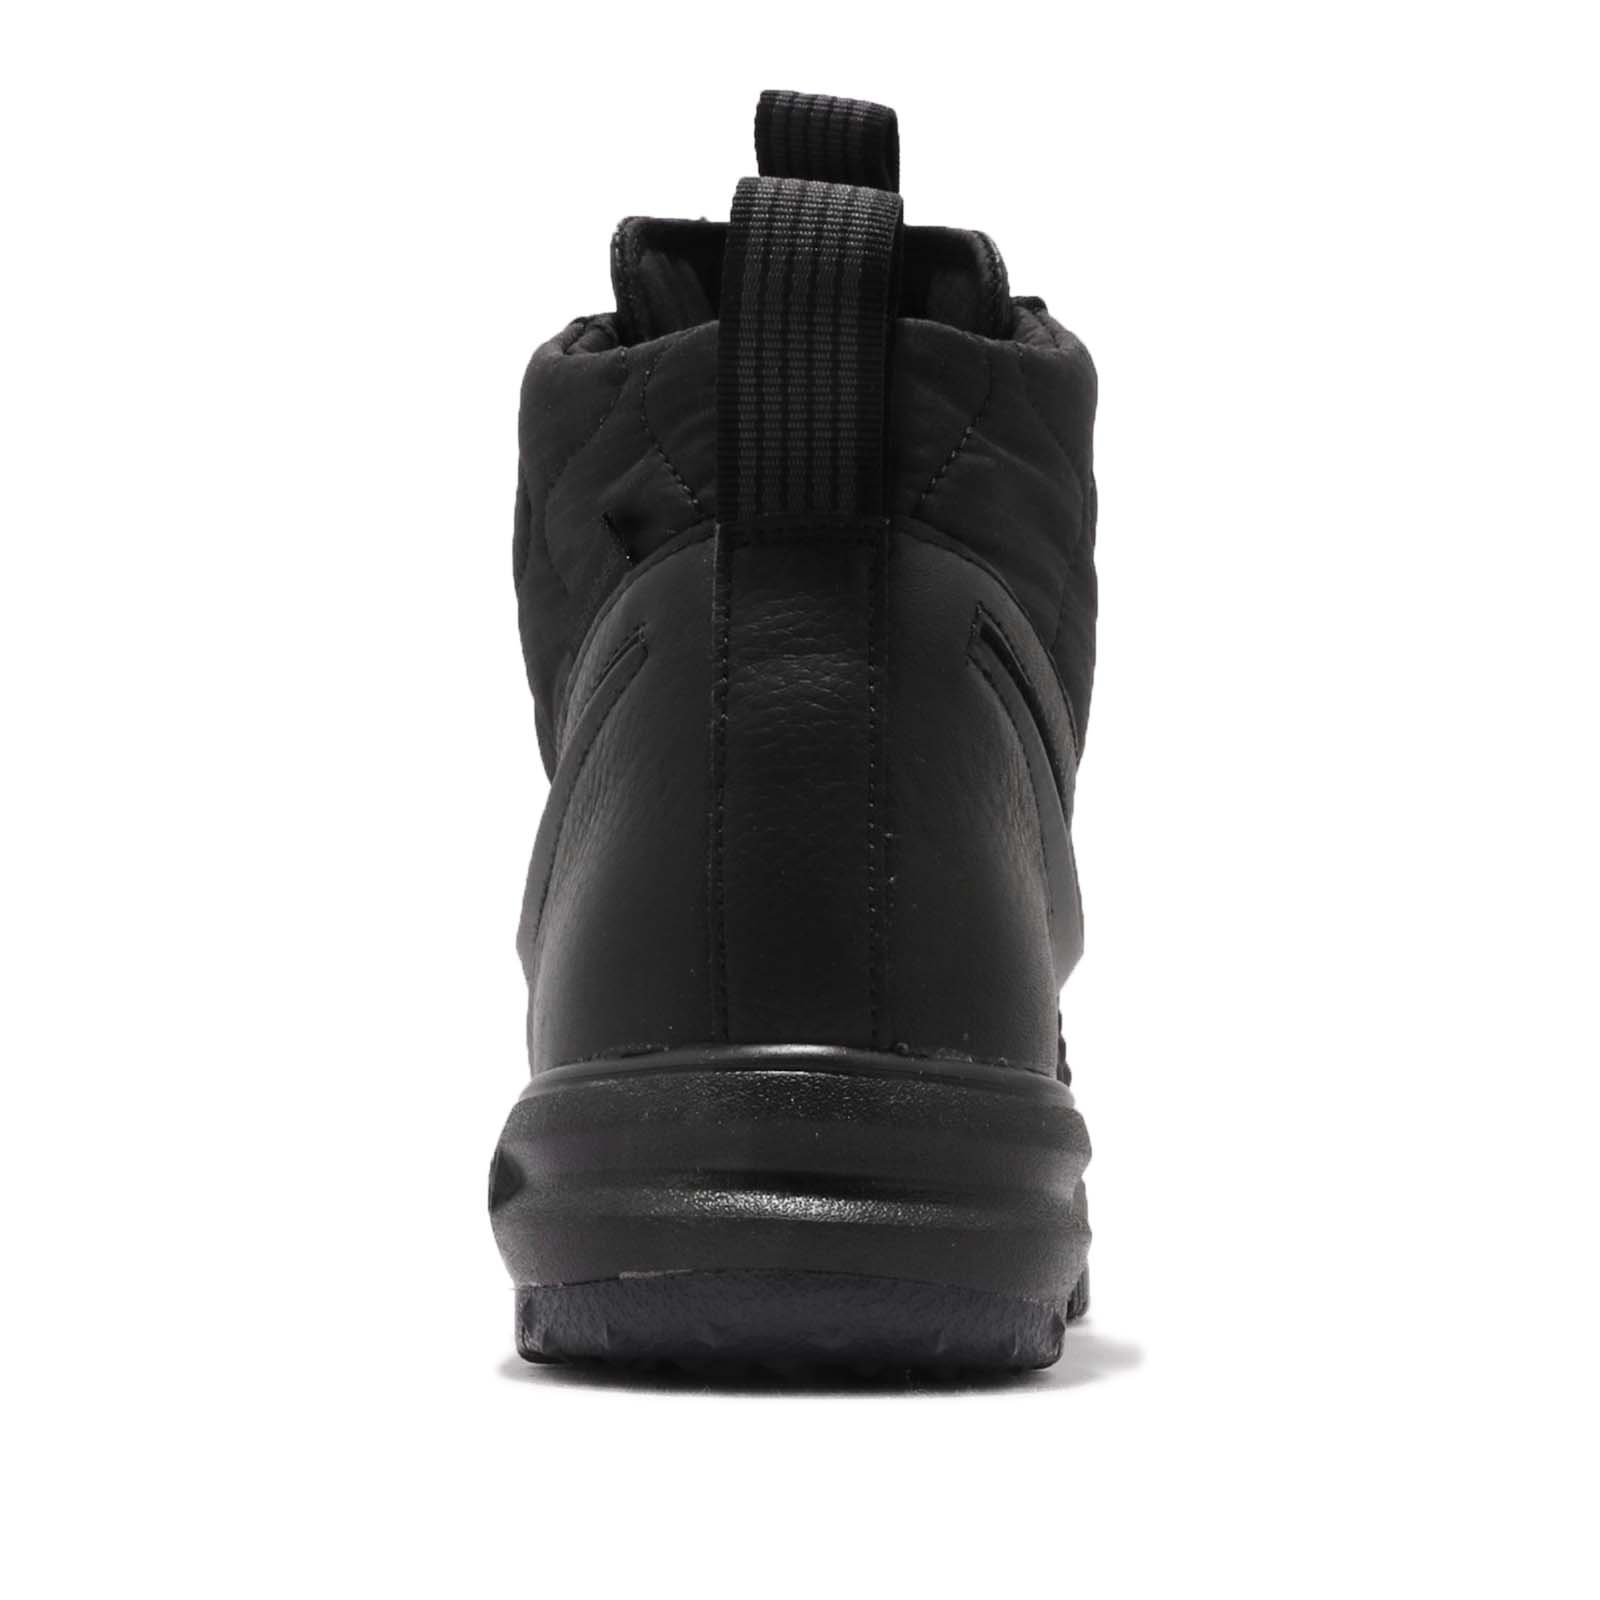 Nike Kid's LF1 Duckboot 17 GS, Black/Black-Anthracite, Youth Size 3.5 by Nike (Image #3)